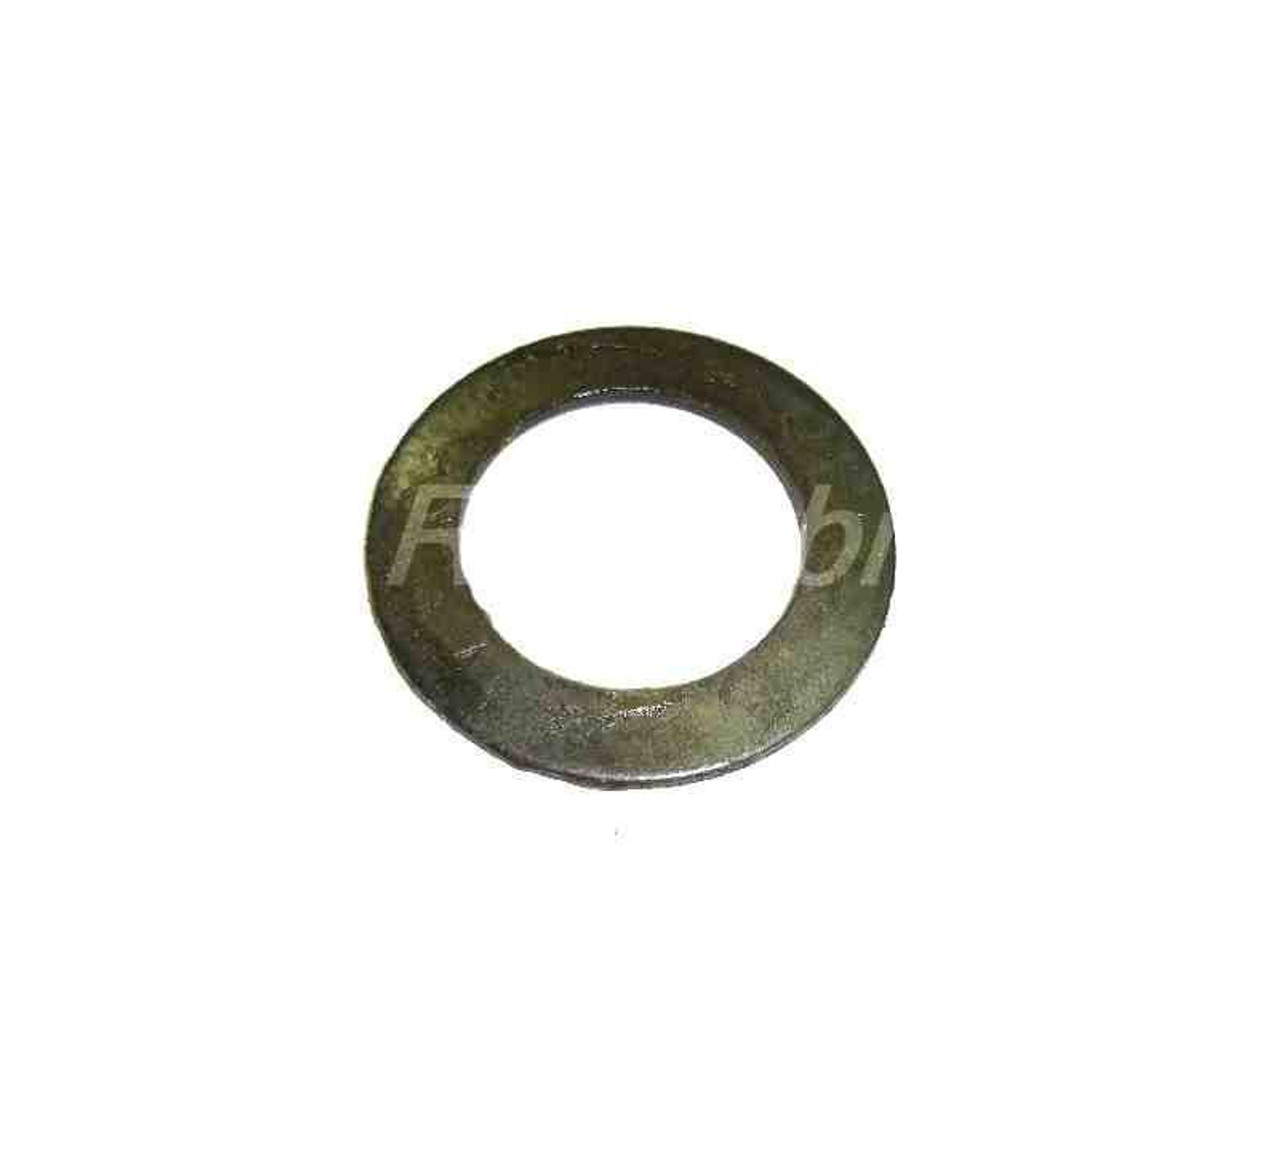 Third Gear Conical Washer